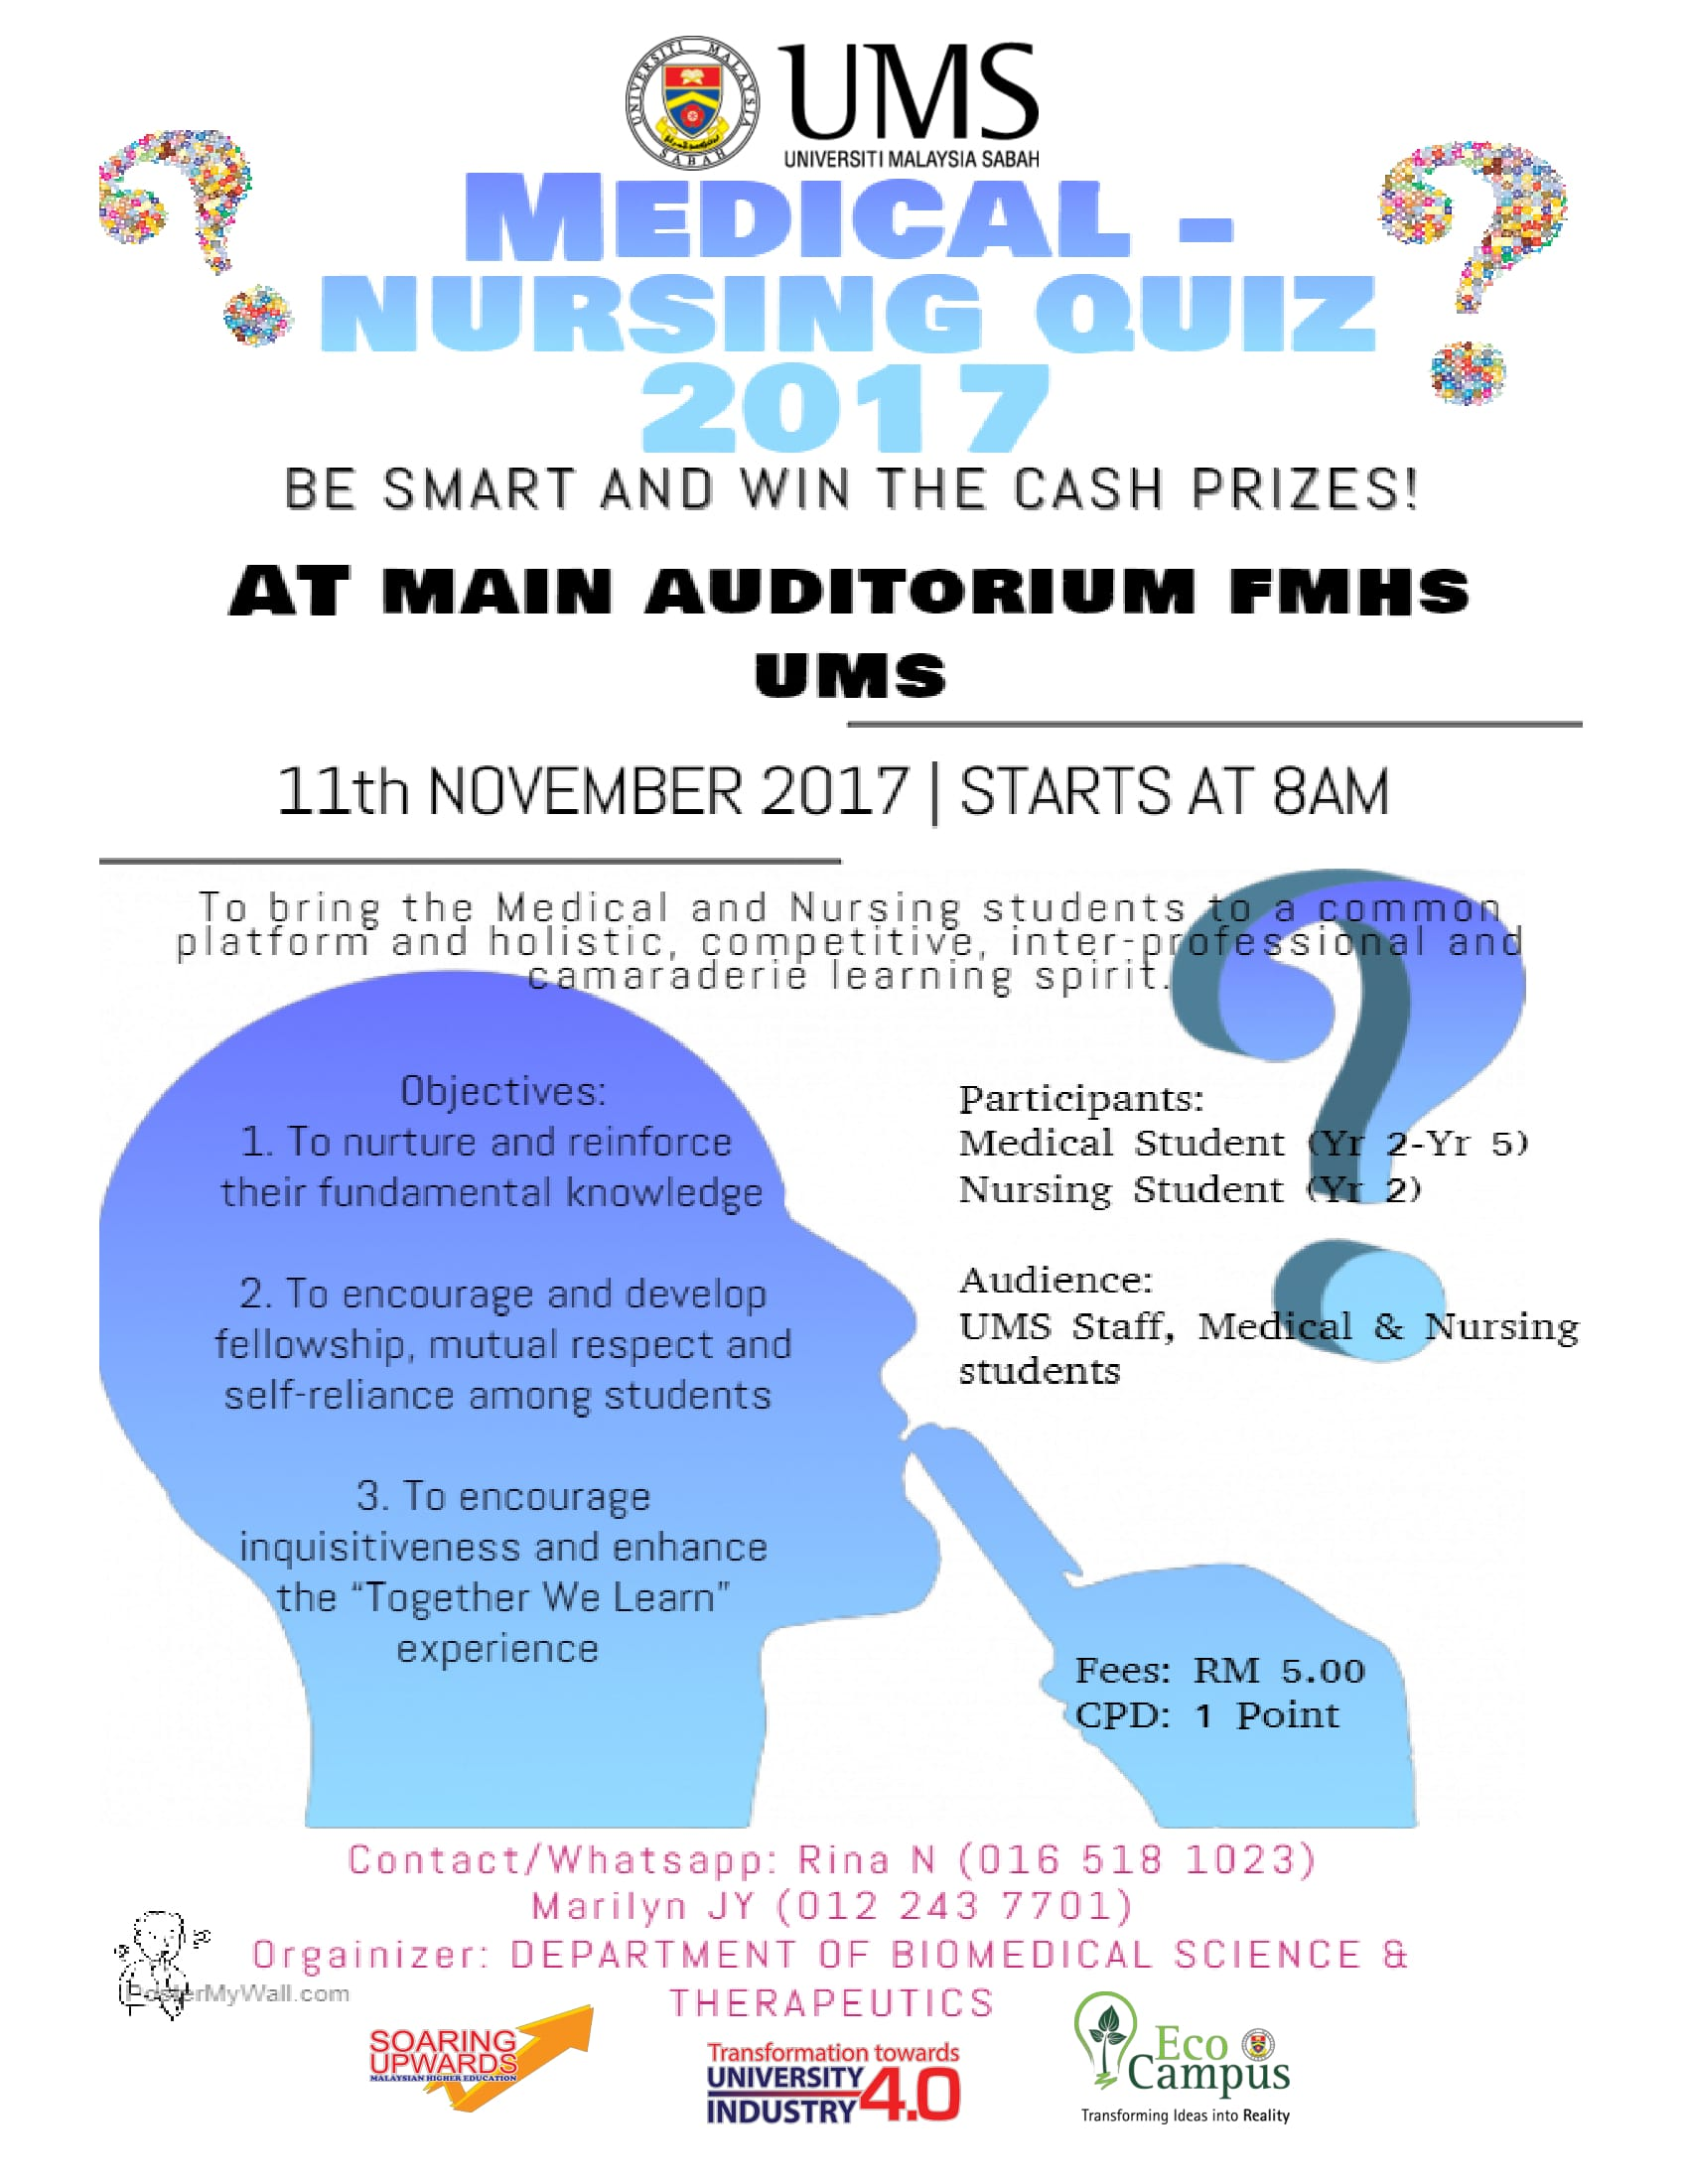 UMS - MEDICAL - NURSING QUIZ 2017